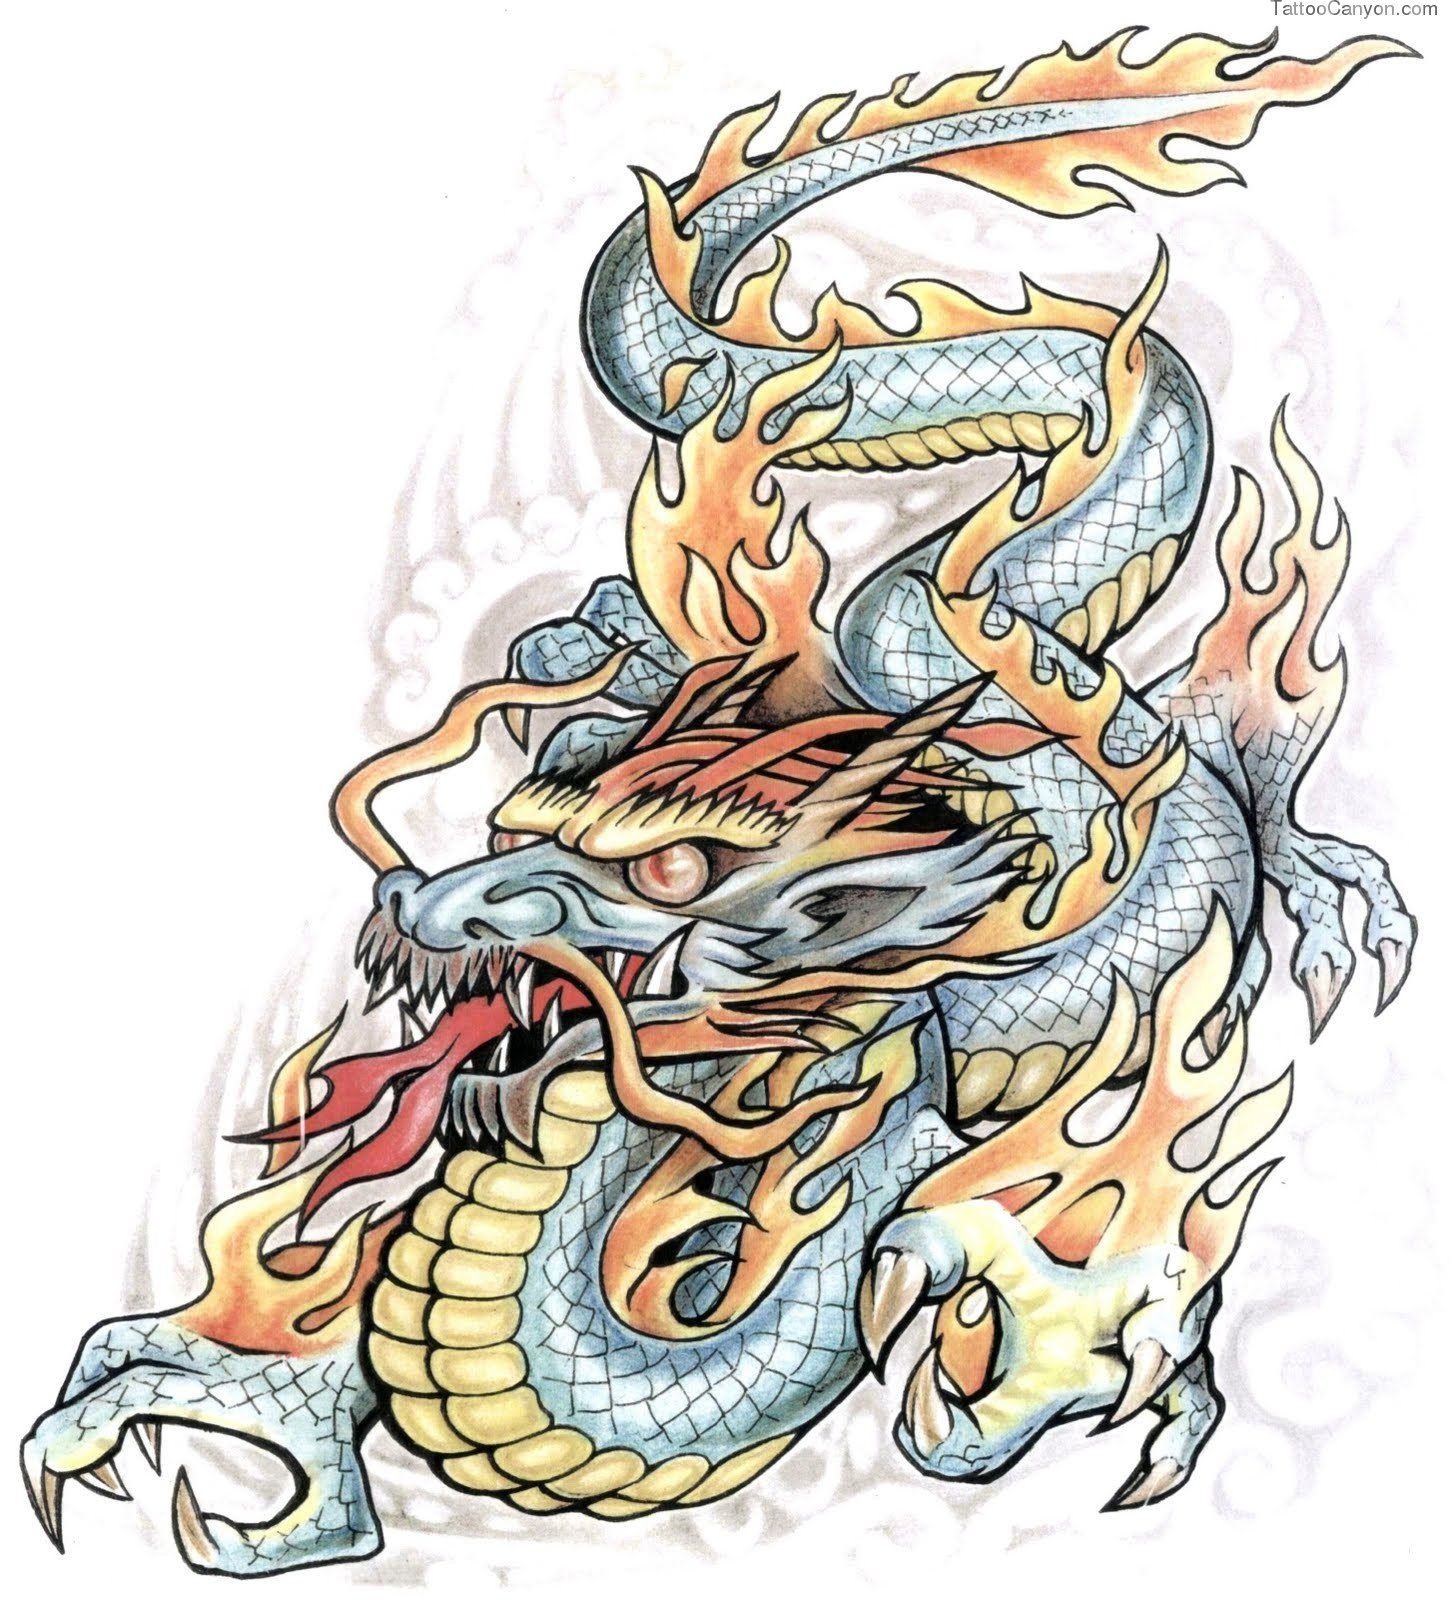 Flame Tattoos Designs Ideas And Meaning: Chinese Dragon On Fire Tattoo Design Tattoology Free